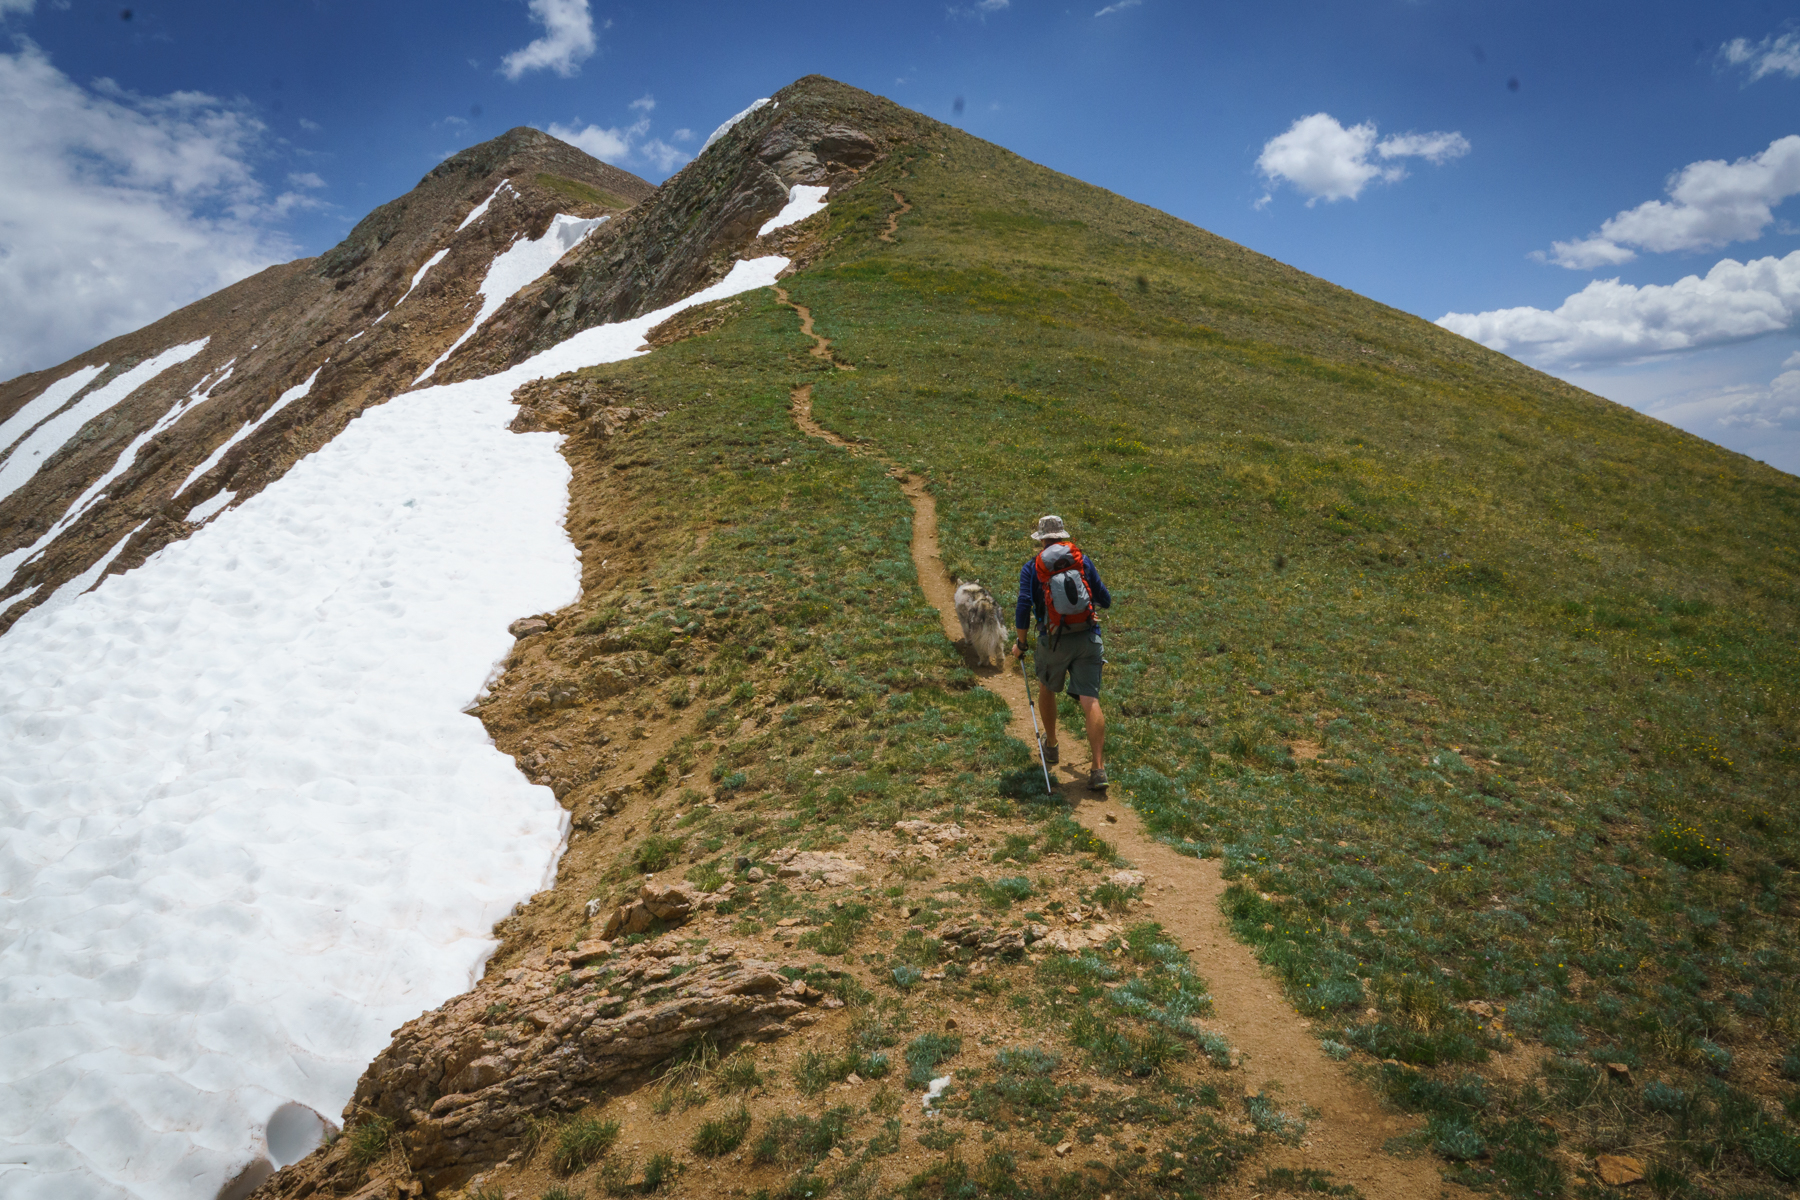 andy hiking exercise everyday. crested butte gym. fitness. strength training